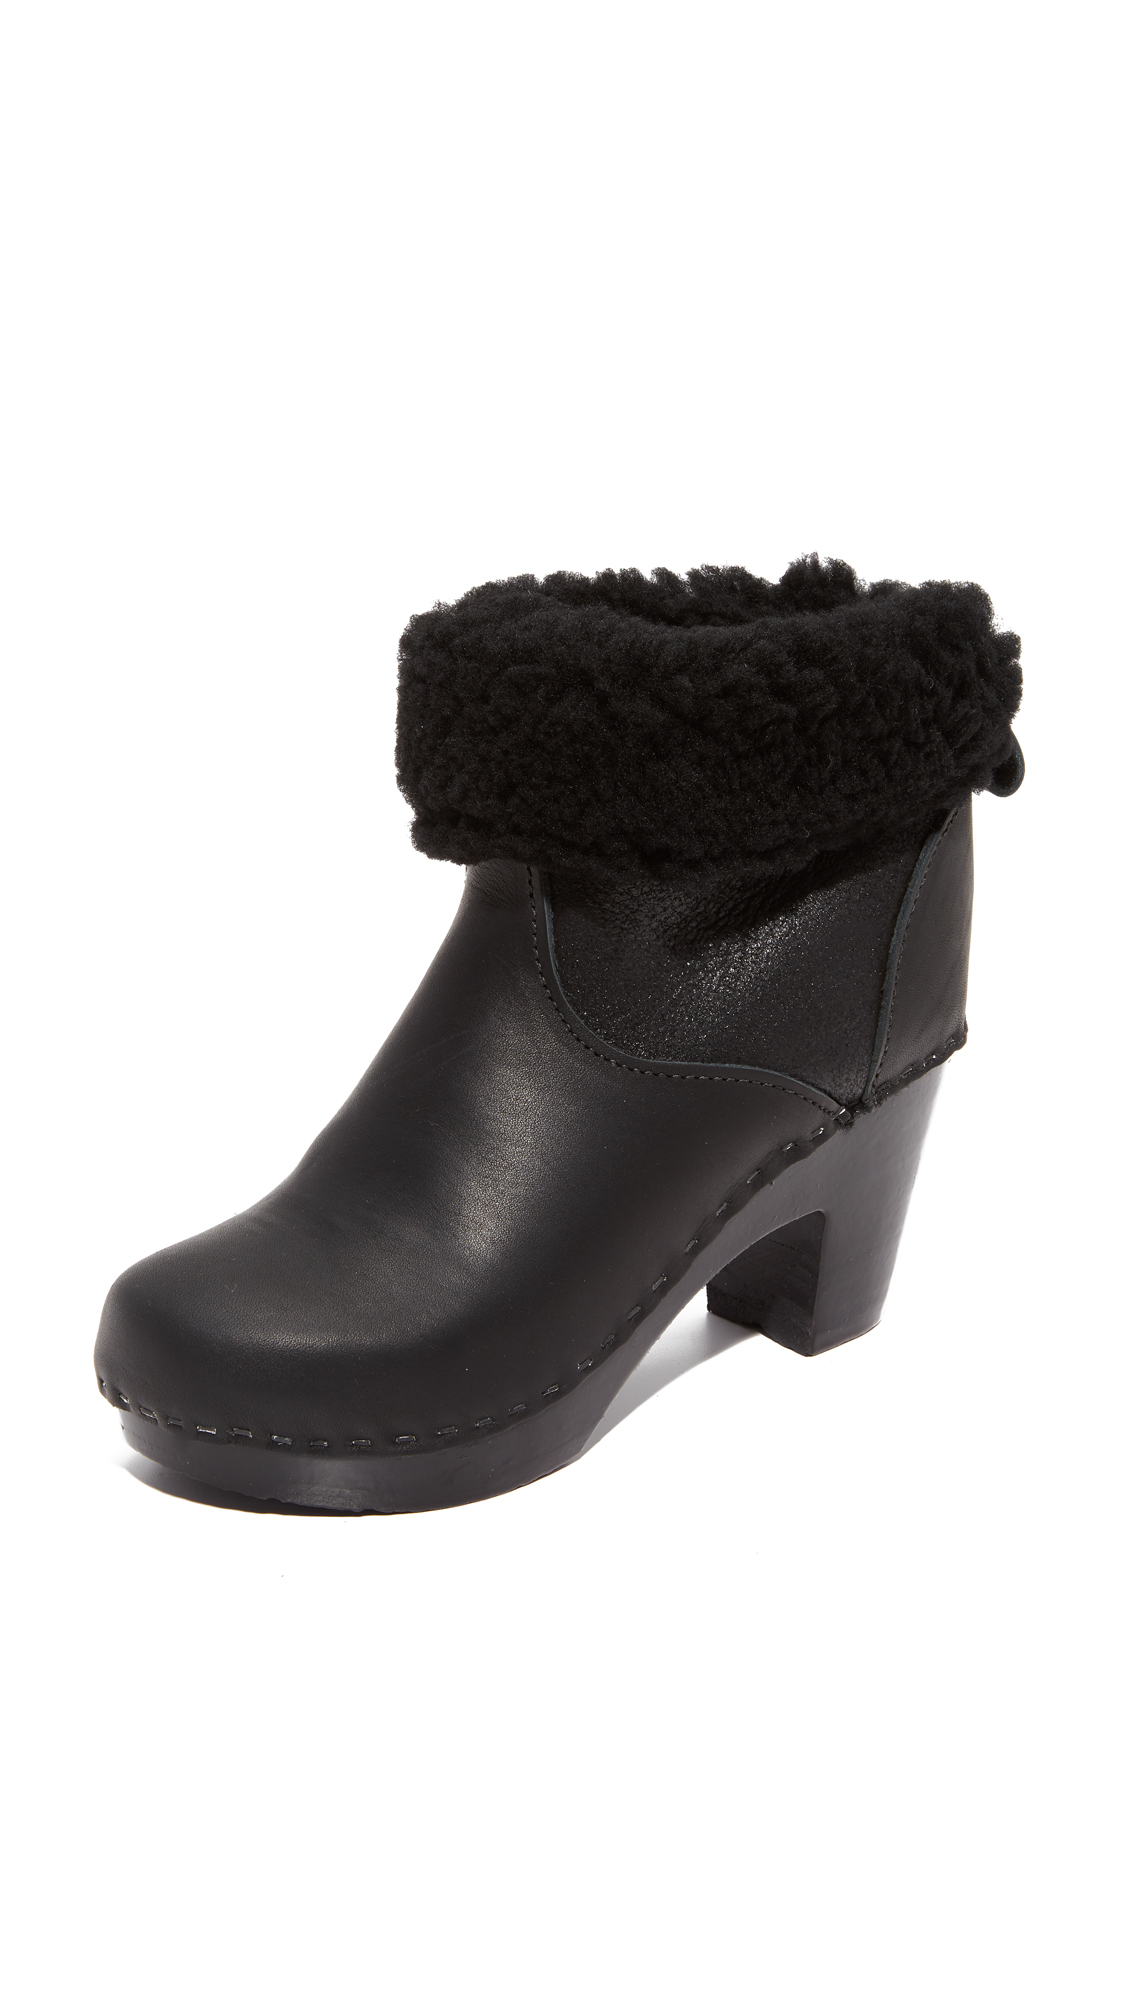 No.6 Pull On Shearling Booties - Double Black Aviator